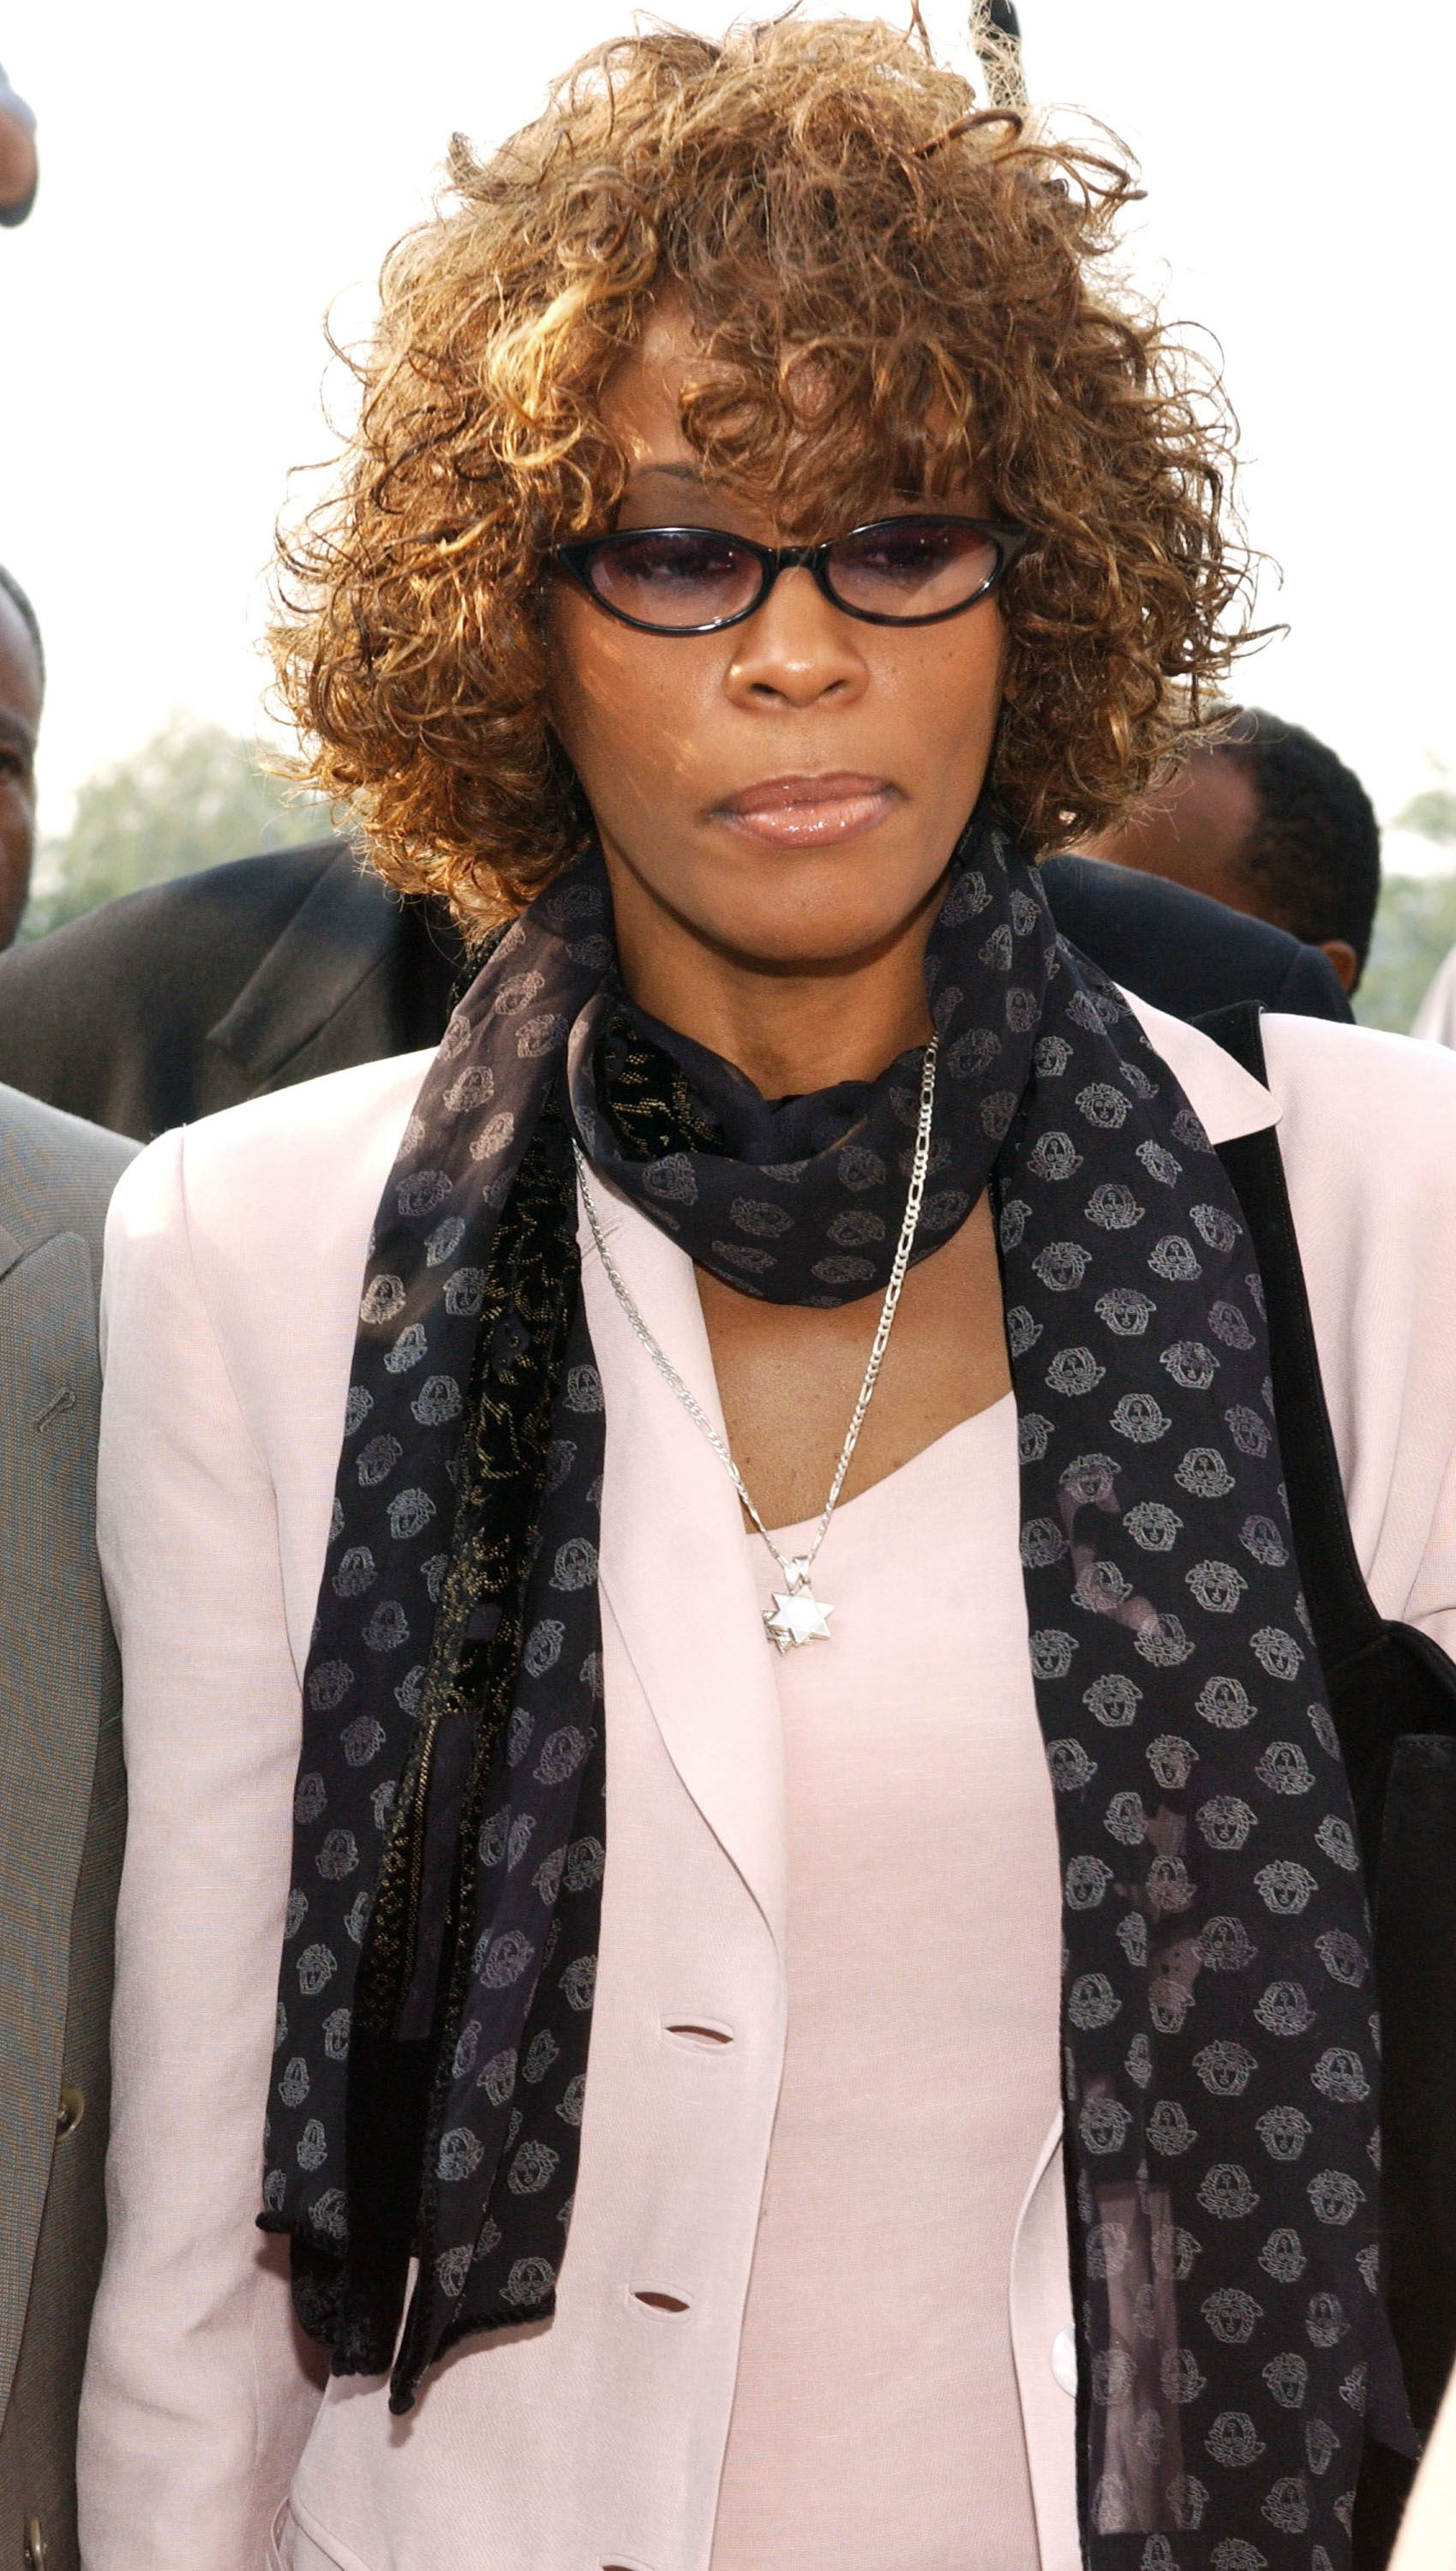 Whitney Houston leaves the DeKalb County Courthouse. | Source: Getty Images